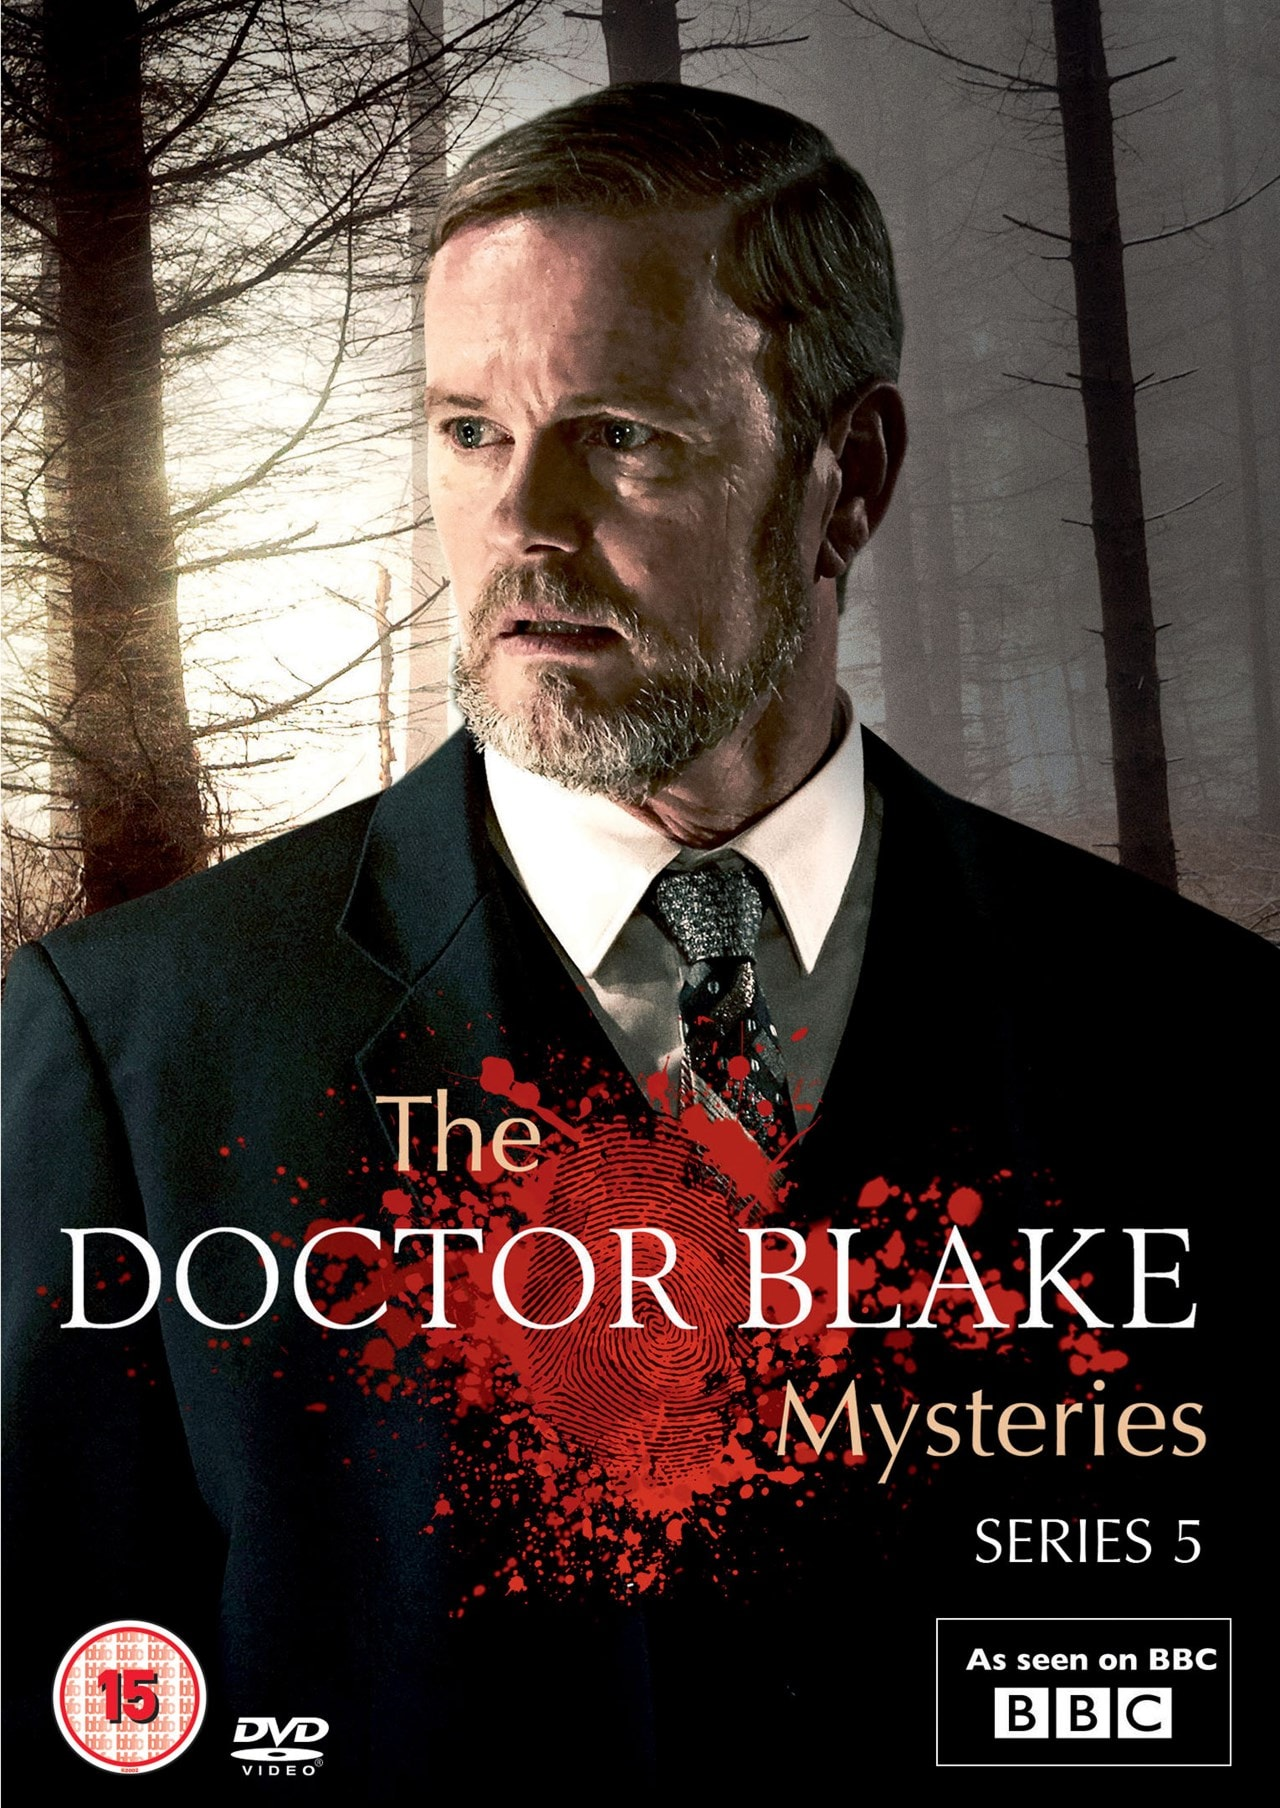 The Doctor Blake Mysteries: Series 5 - 1